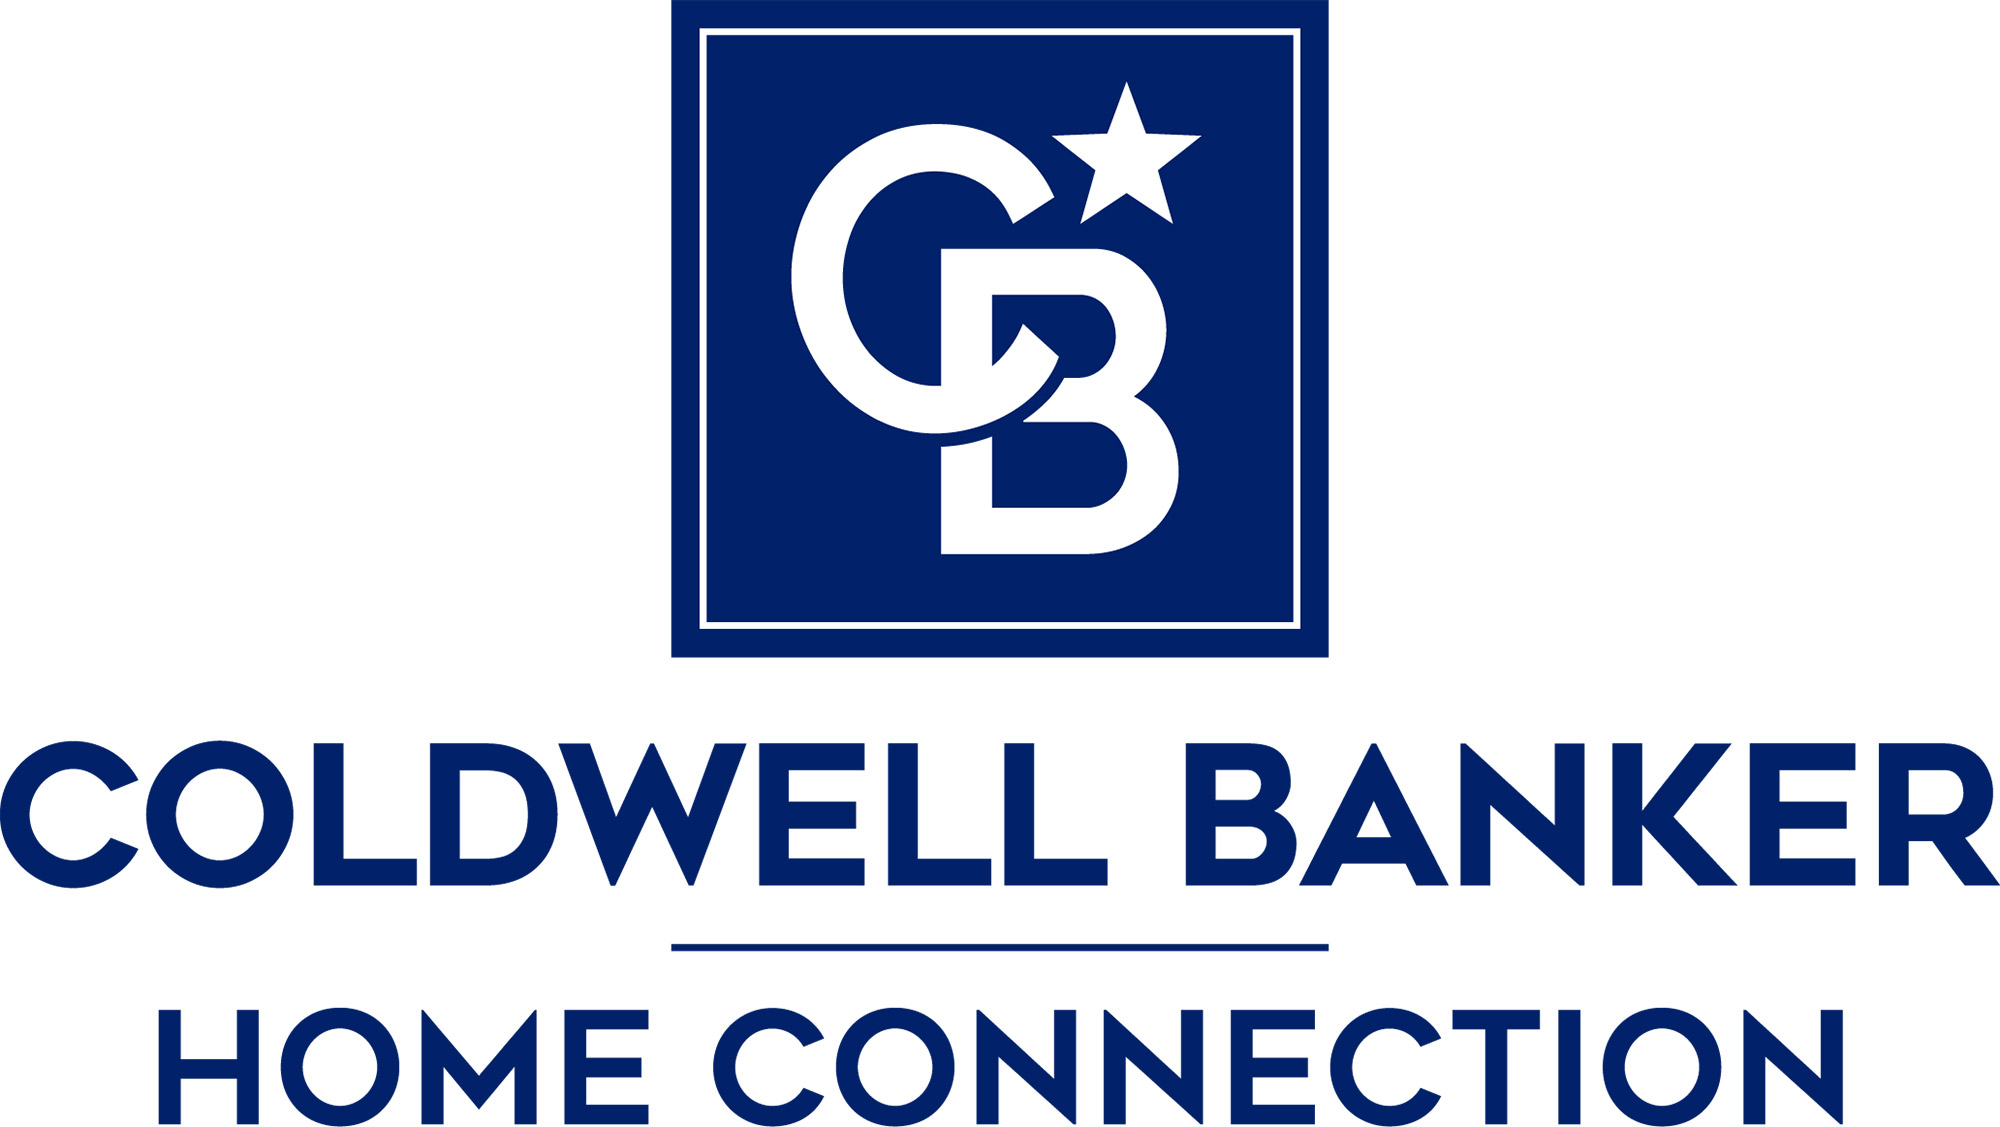 Toni Van Esch - Coldwell Banker Home Connection Logo